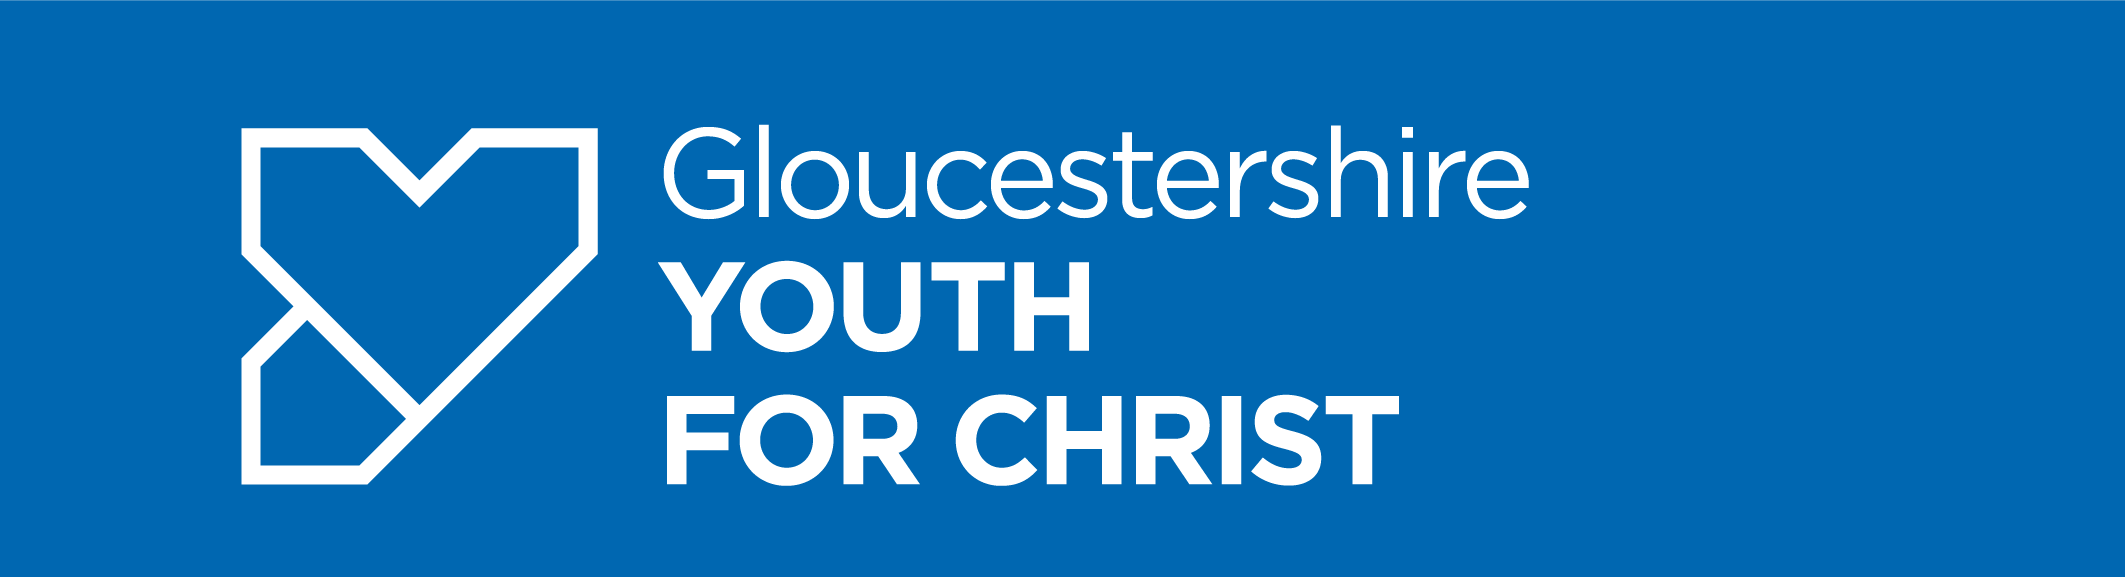 Youth for Christ Gloucestershire